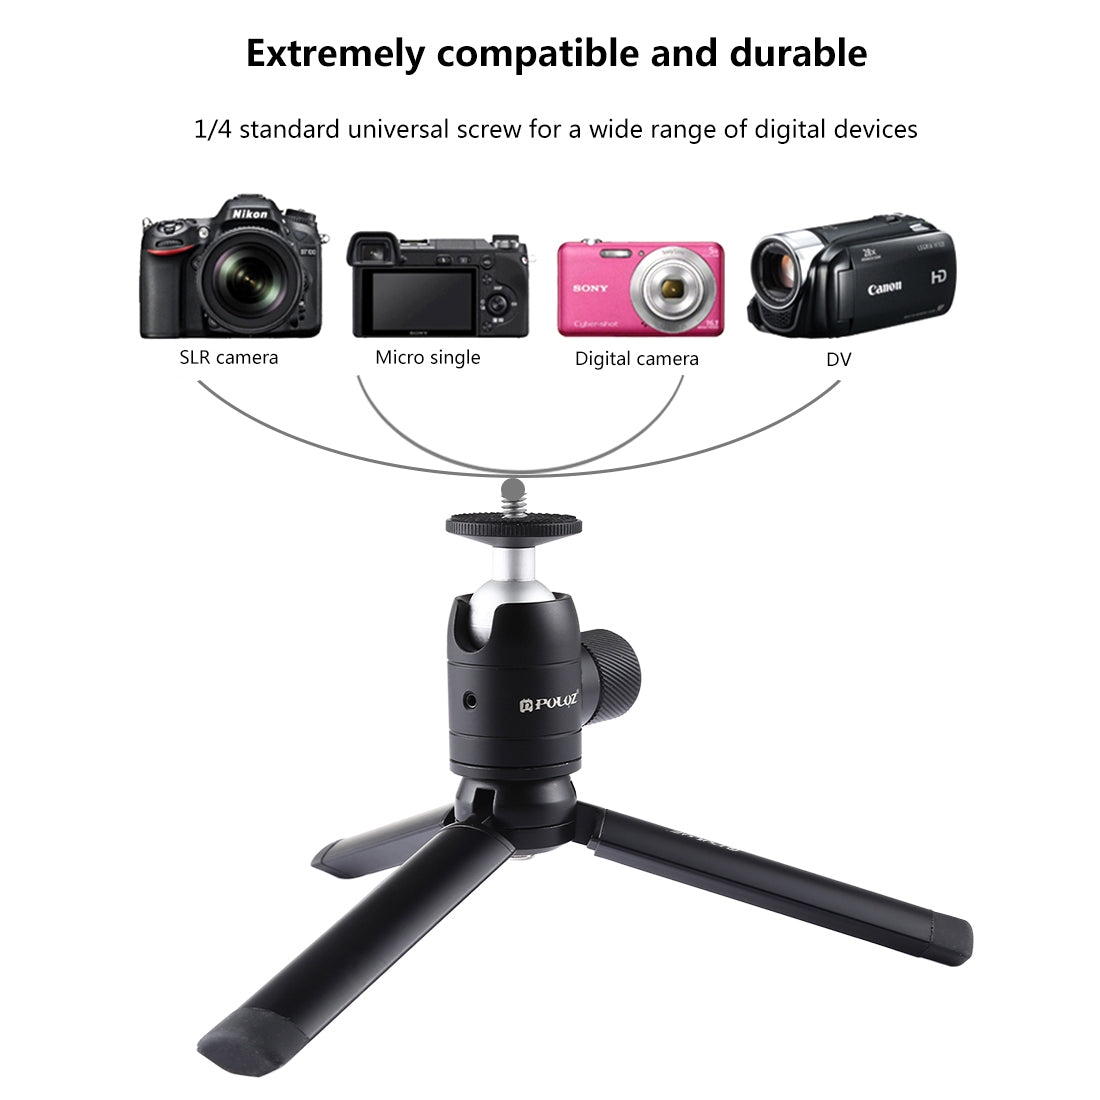 Mini Pocket Metal Desktop Tripod Mount + Mini  Metal Ball Head with 1/4 inch Screw for DSLR & Digital Cameras